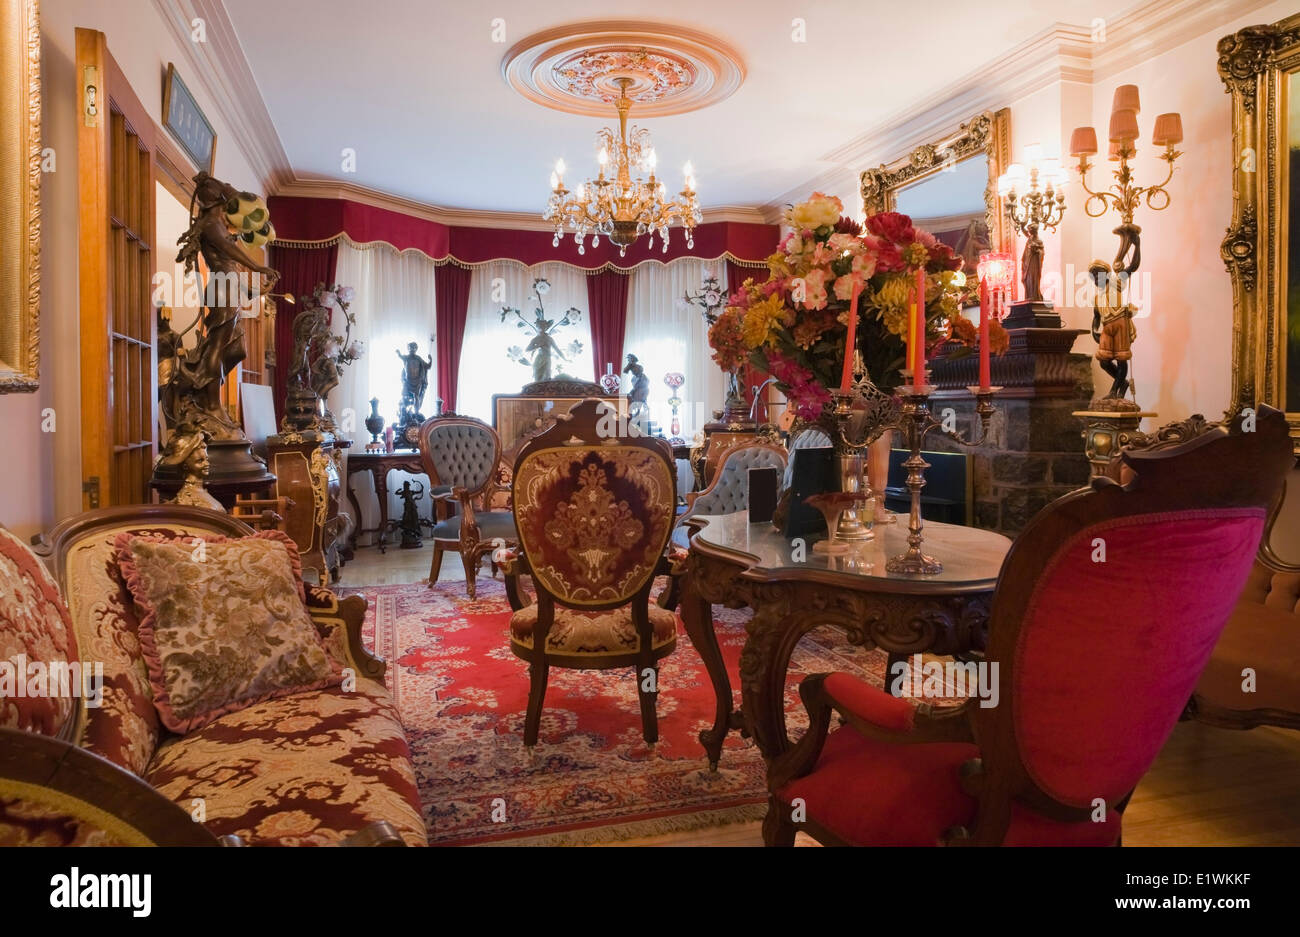 Antique Furniture Furnishings Adorn A Living Room Inside Victorian Mansion Quebec Canada This Image